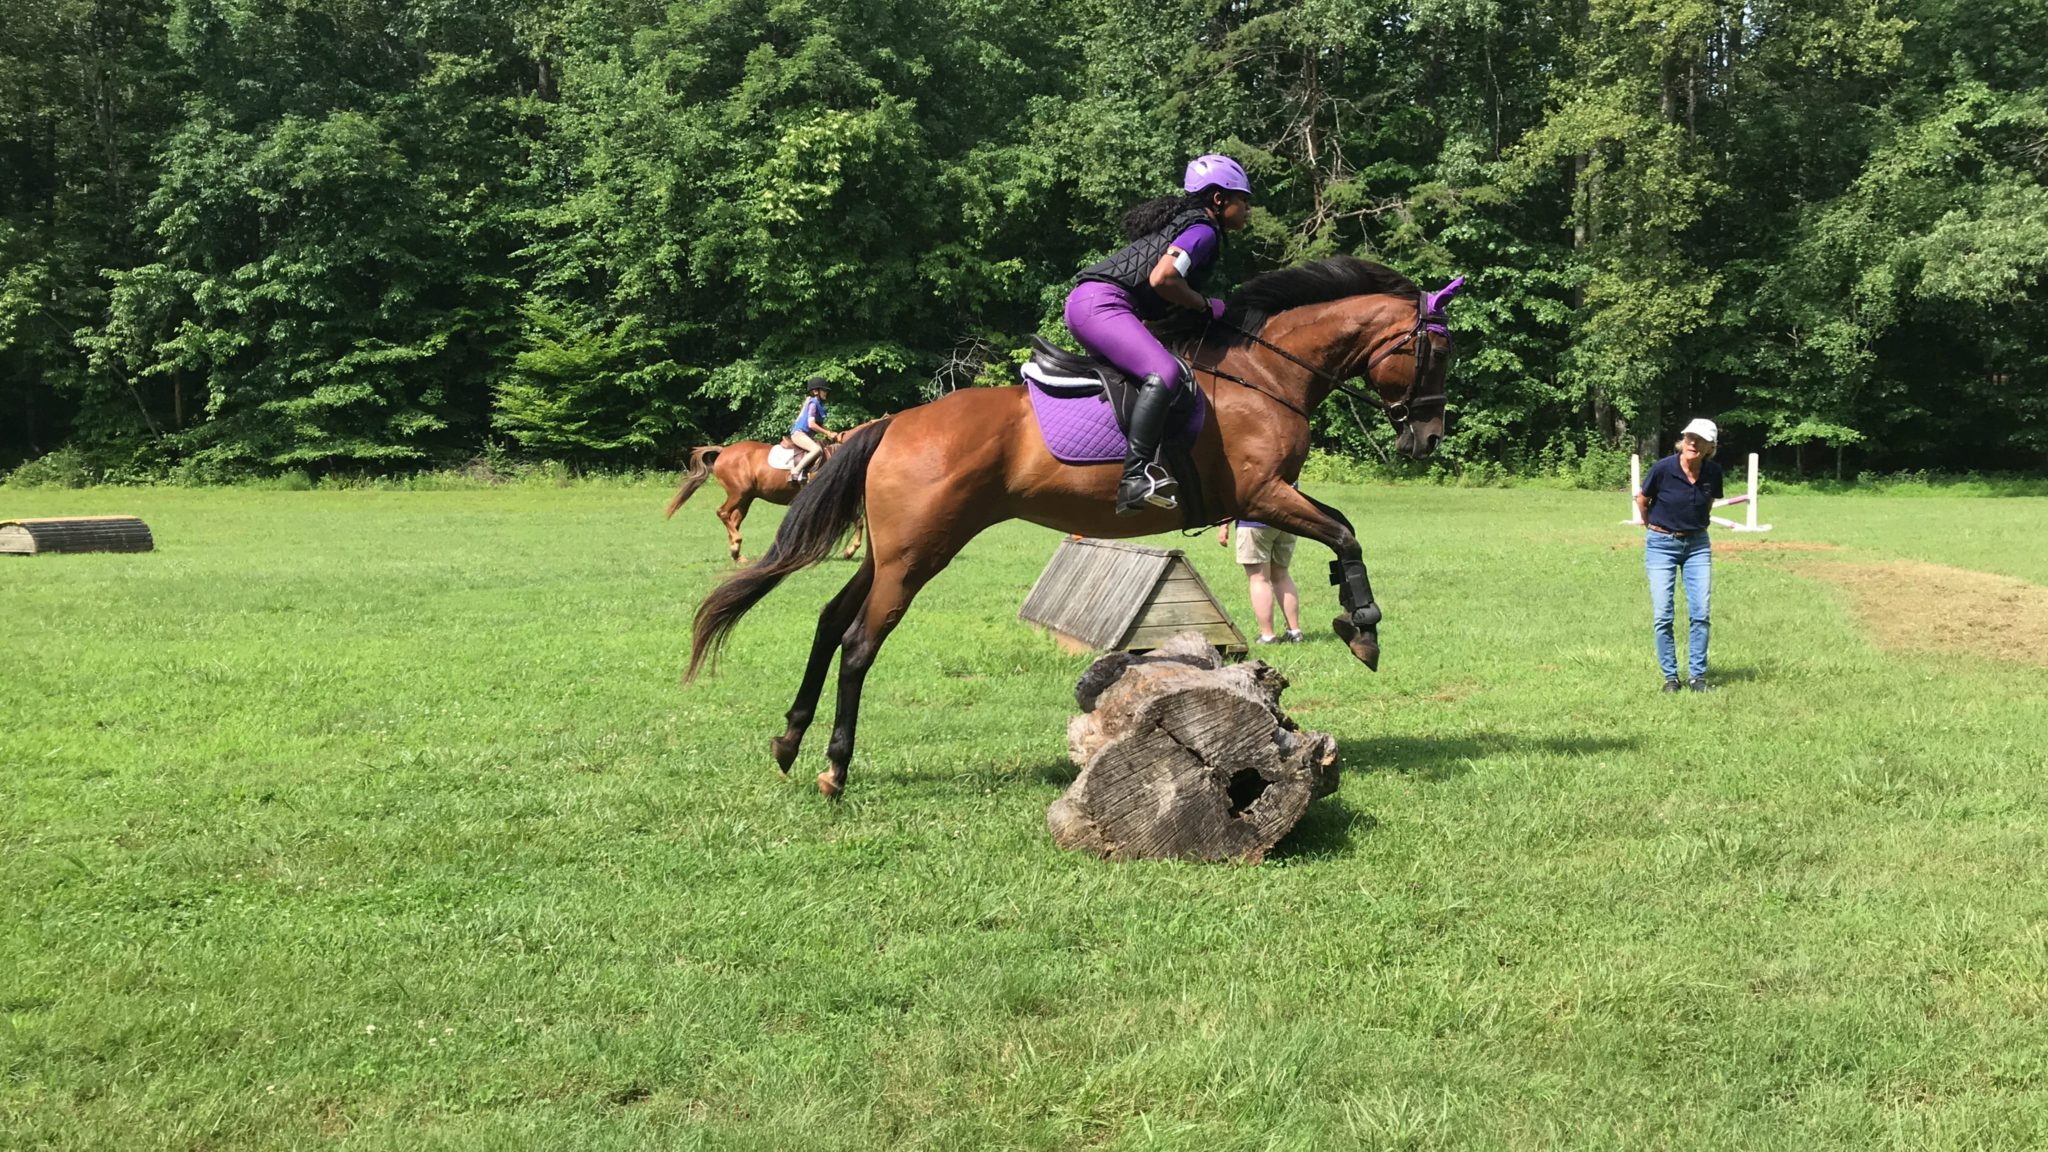 What Is The Correct Jumping Position For Horse Riders